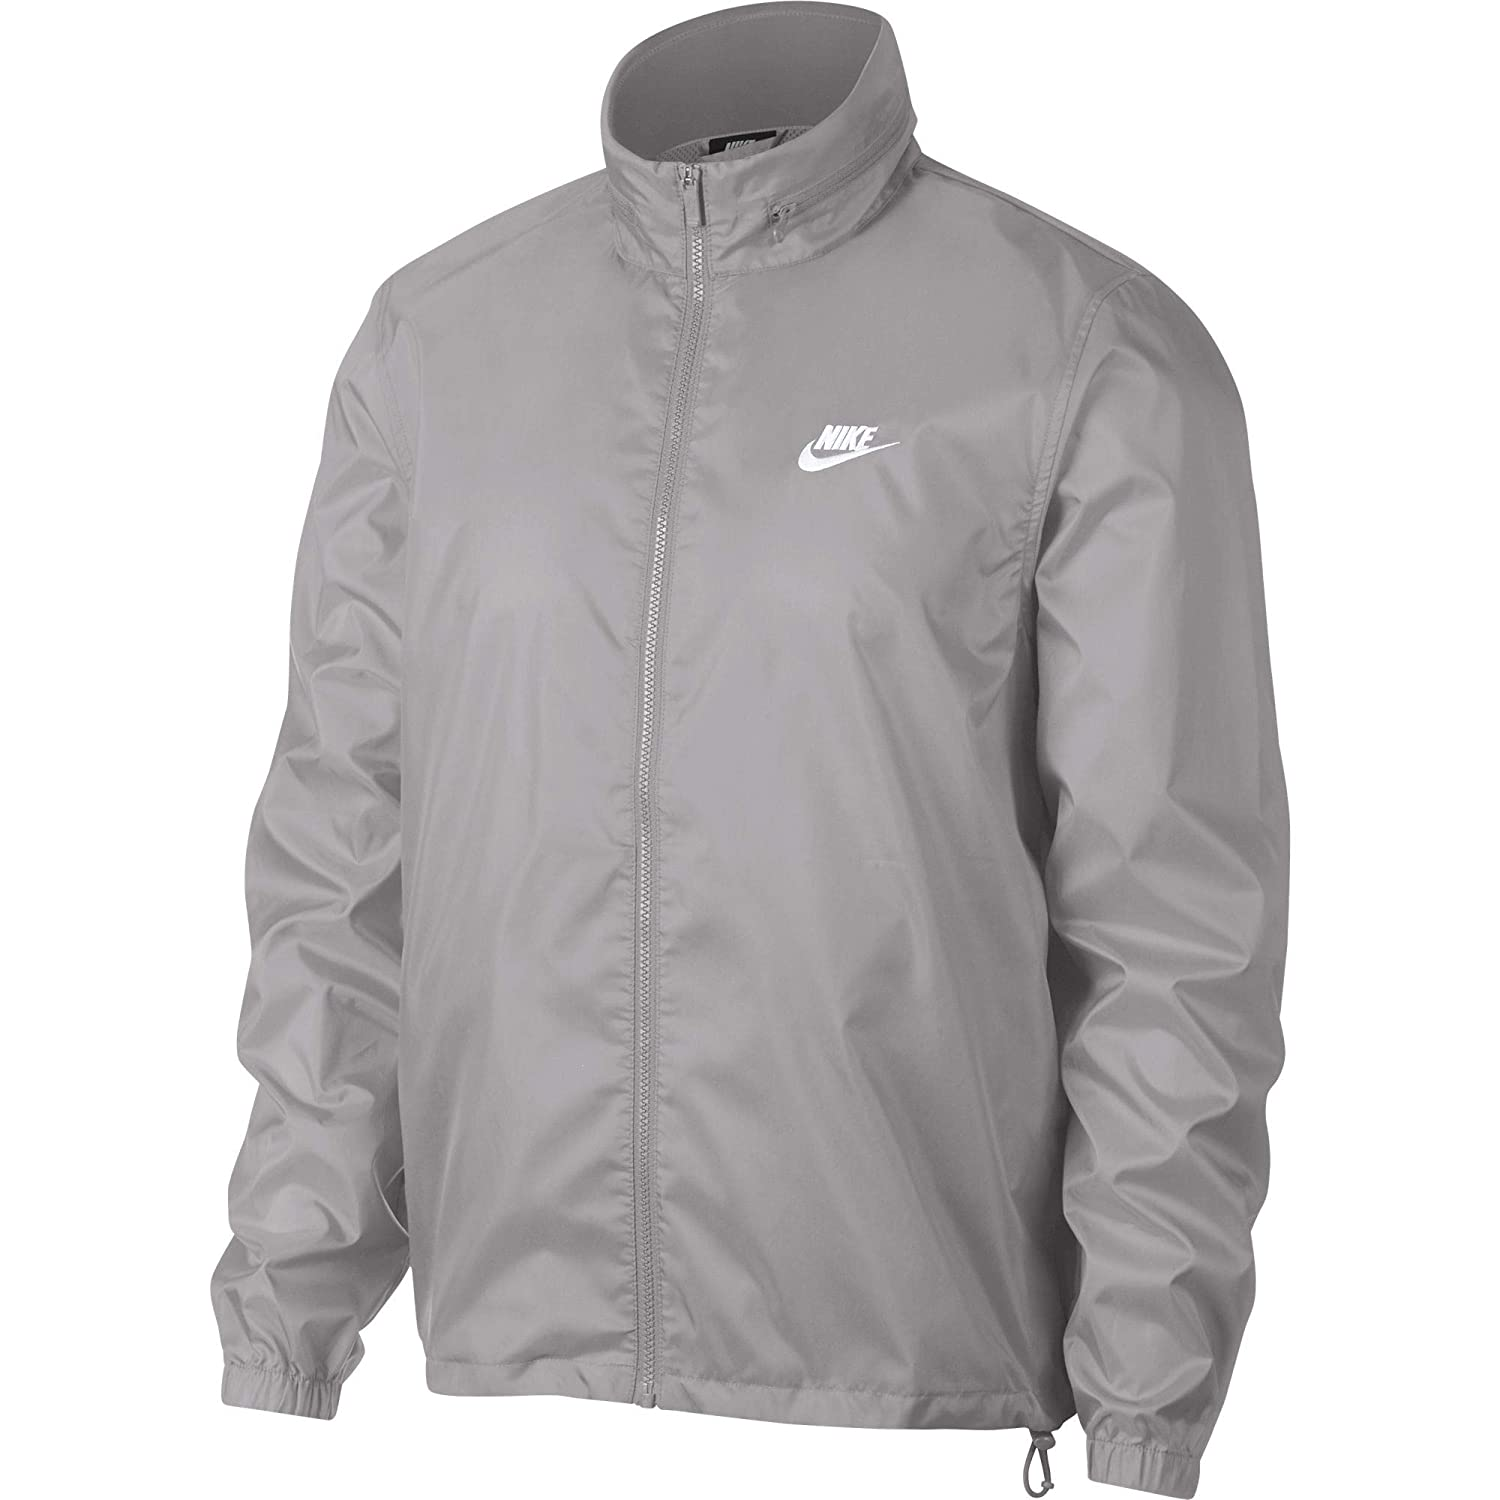 ee4a693a0434 Nike Men s Sportswear Hooded Windbreaker Jacket at Amazon Men s Clothing  store